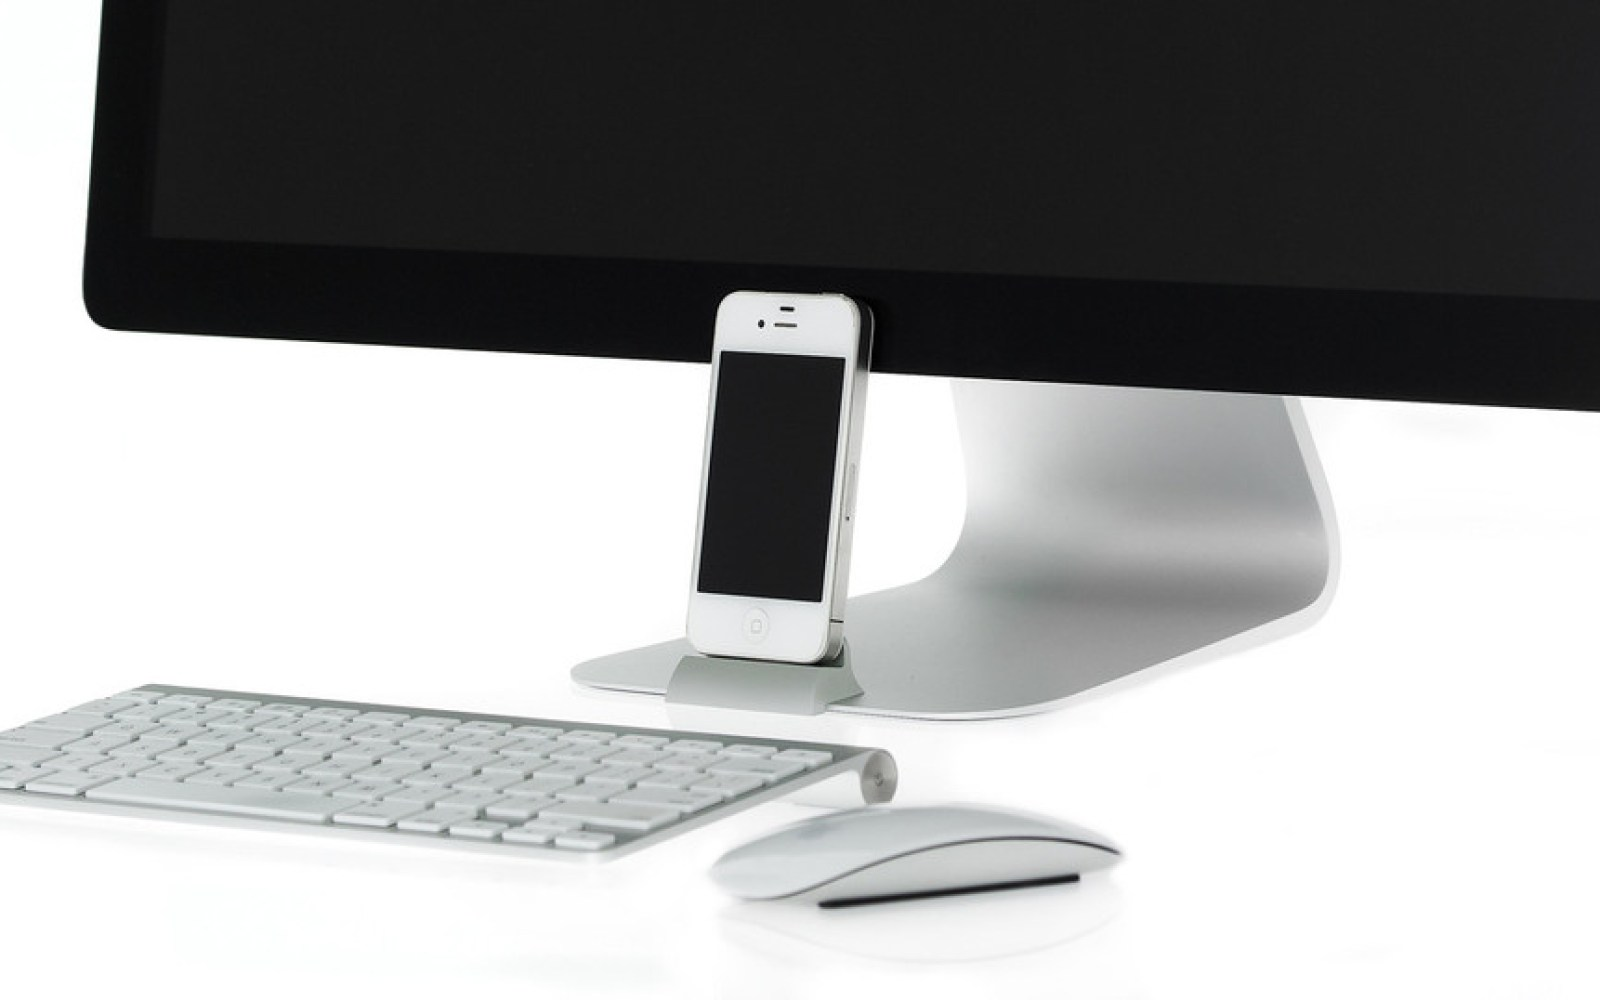 Giveaway: Win an OCDock or OCGlass for iPhone from OCDesk